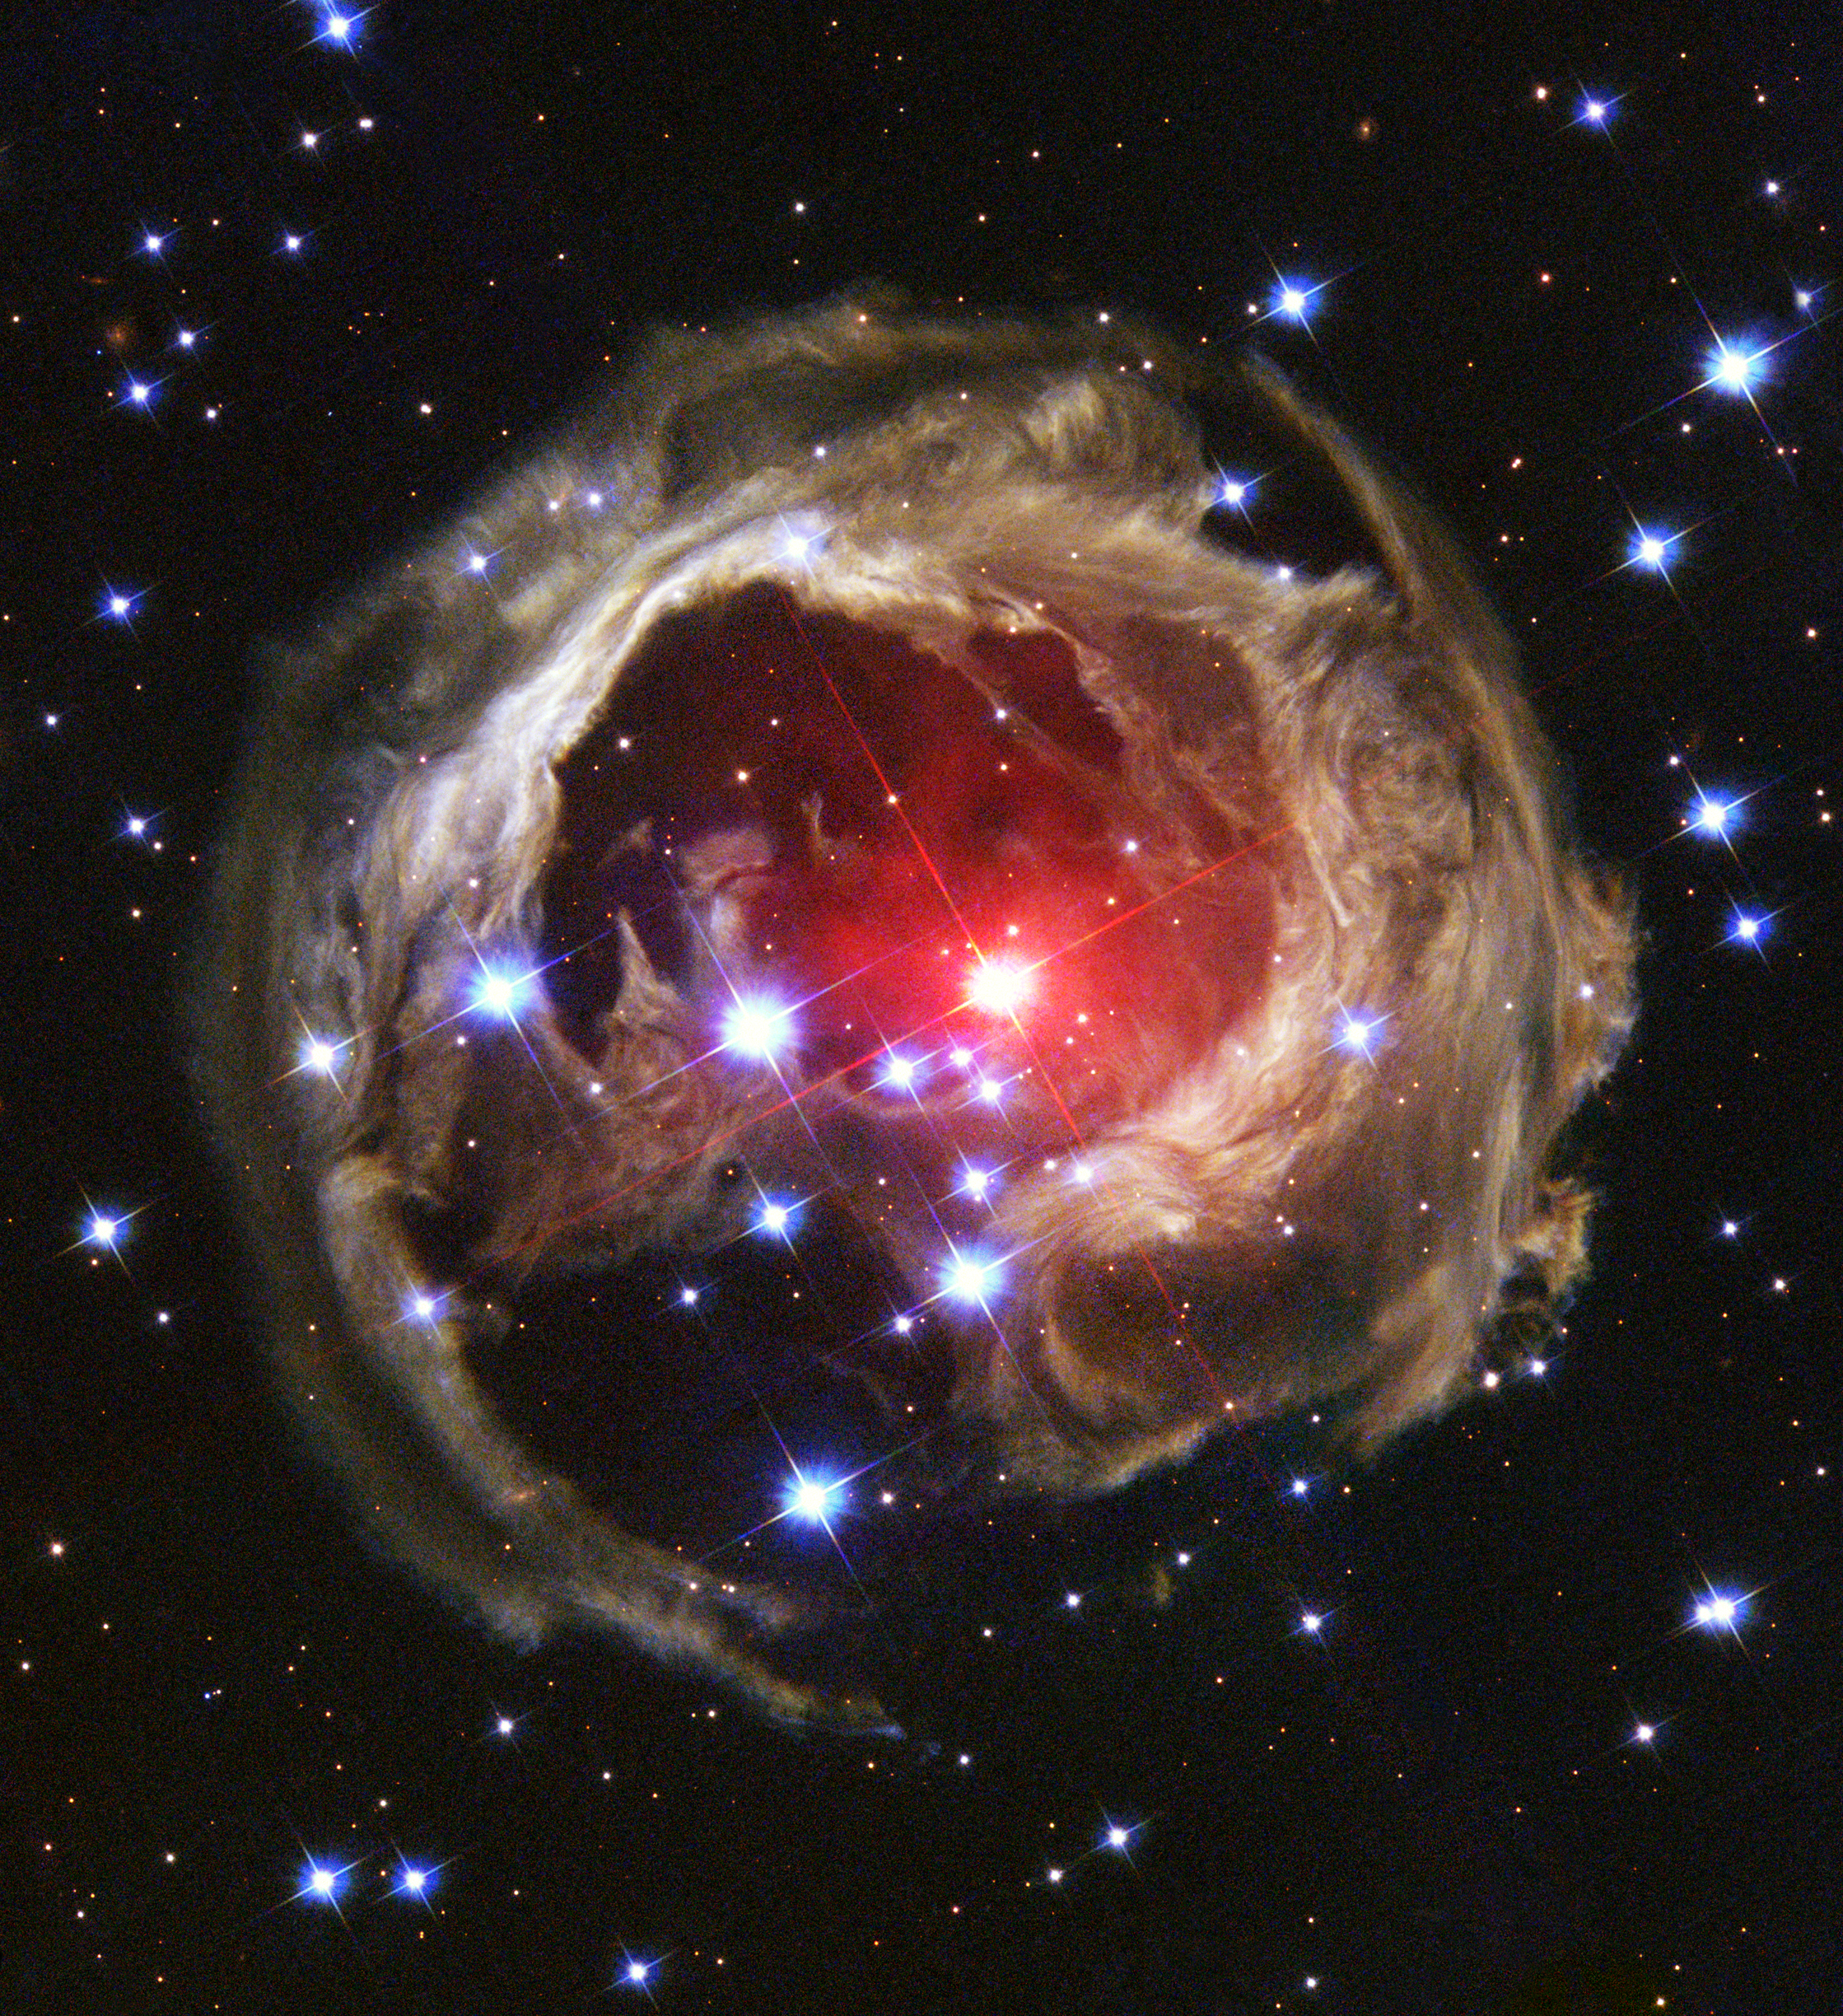 apod 2013 march 17 light echoes from v838 mon